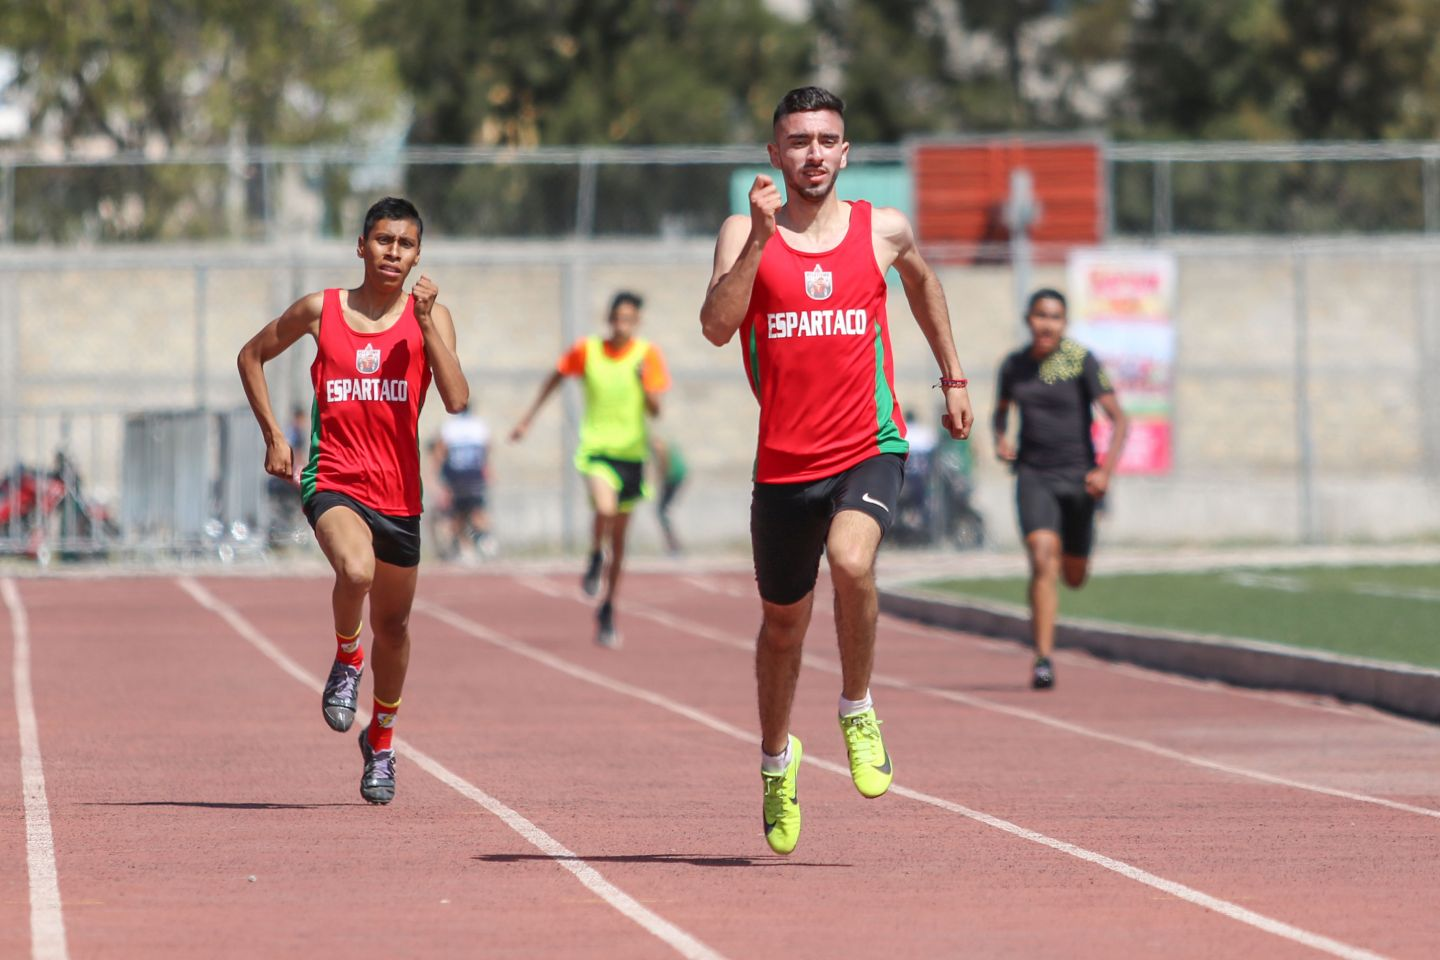 Chimalhuacán, sede de Eliminatoria Estatal de Atletismo